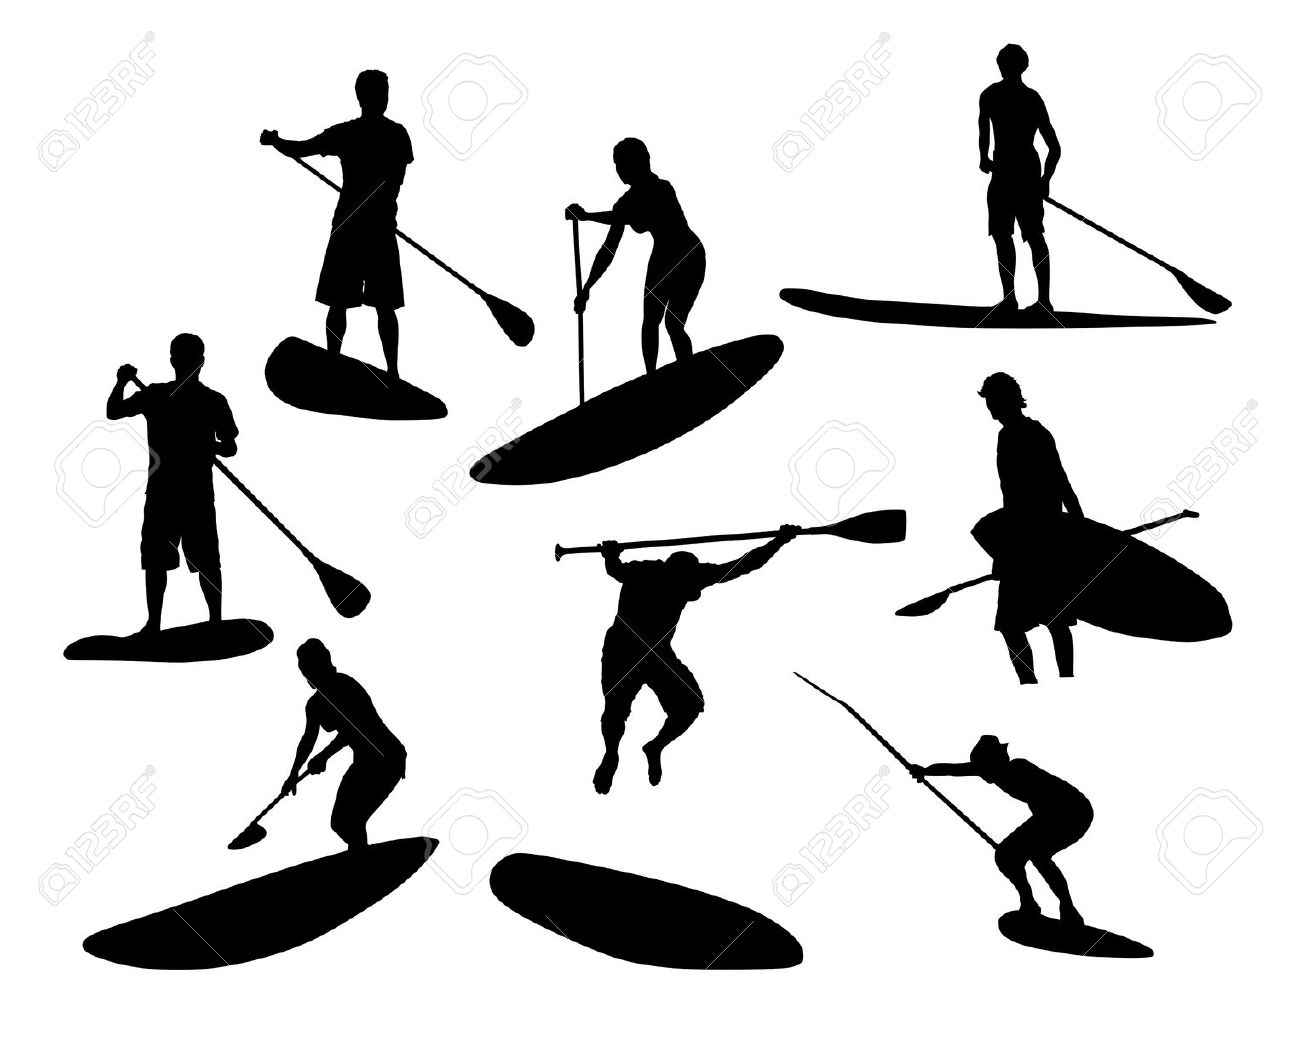 SUP Silhouettes 2 Royalty Free Cliparts, Vectors, And Stock.